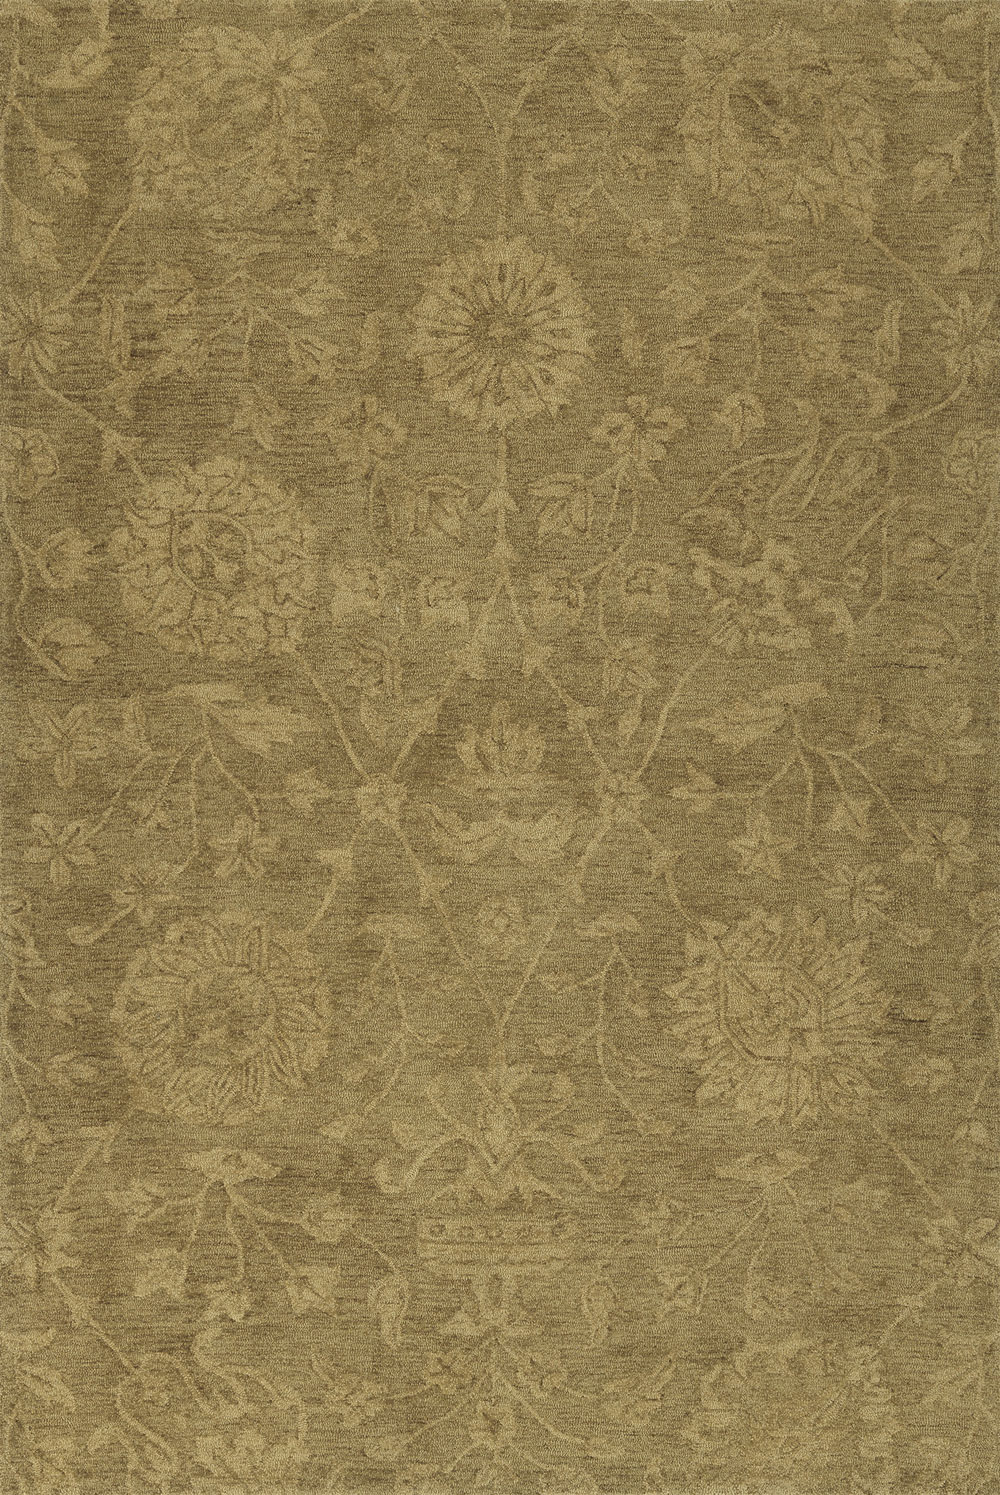 Dalyn Korba KB1 Goldenrod Rug